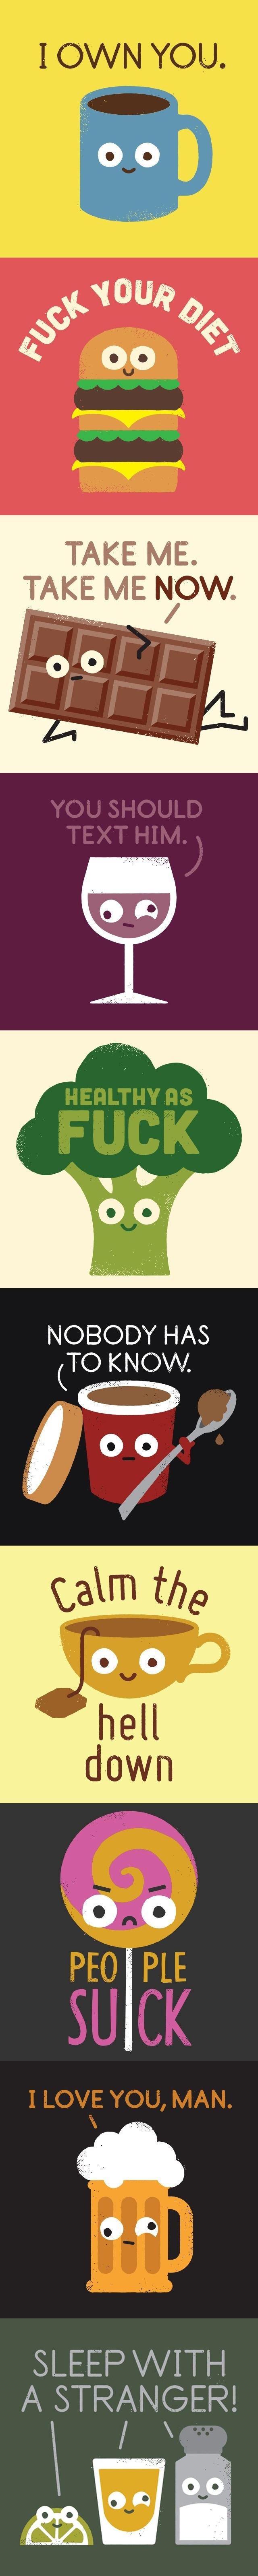 If food told you the truth